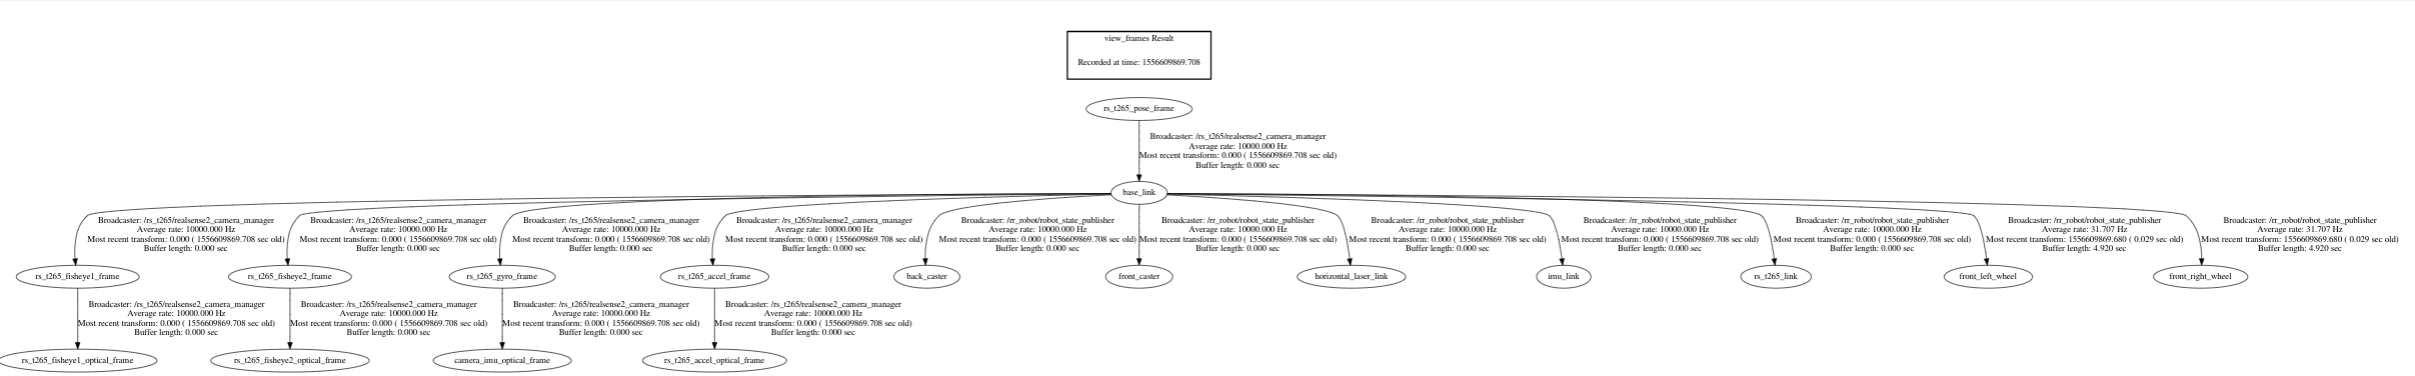 Example tf tree with T265 and a mobile robot · Issue #749